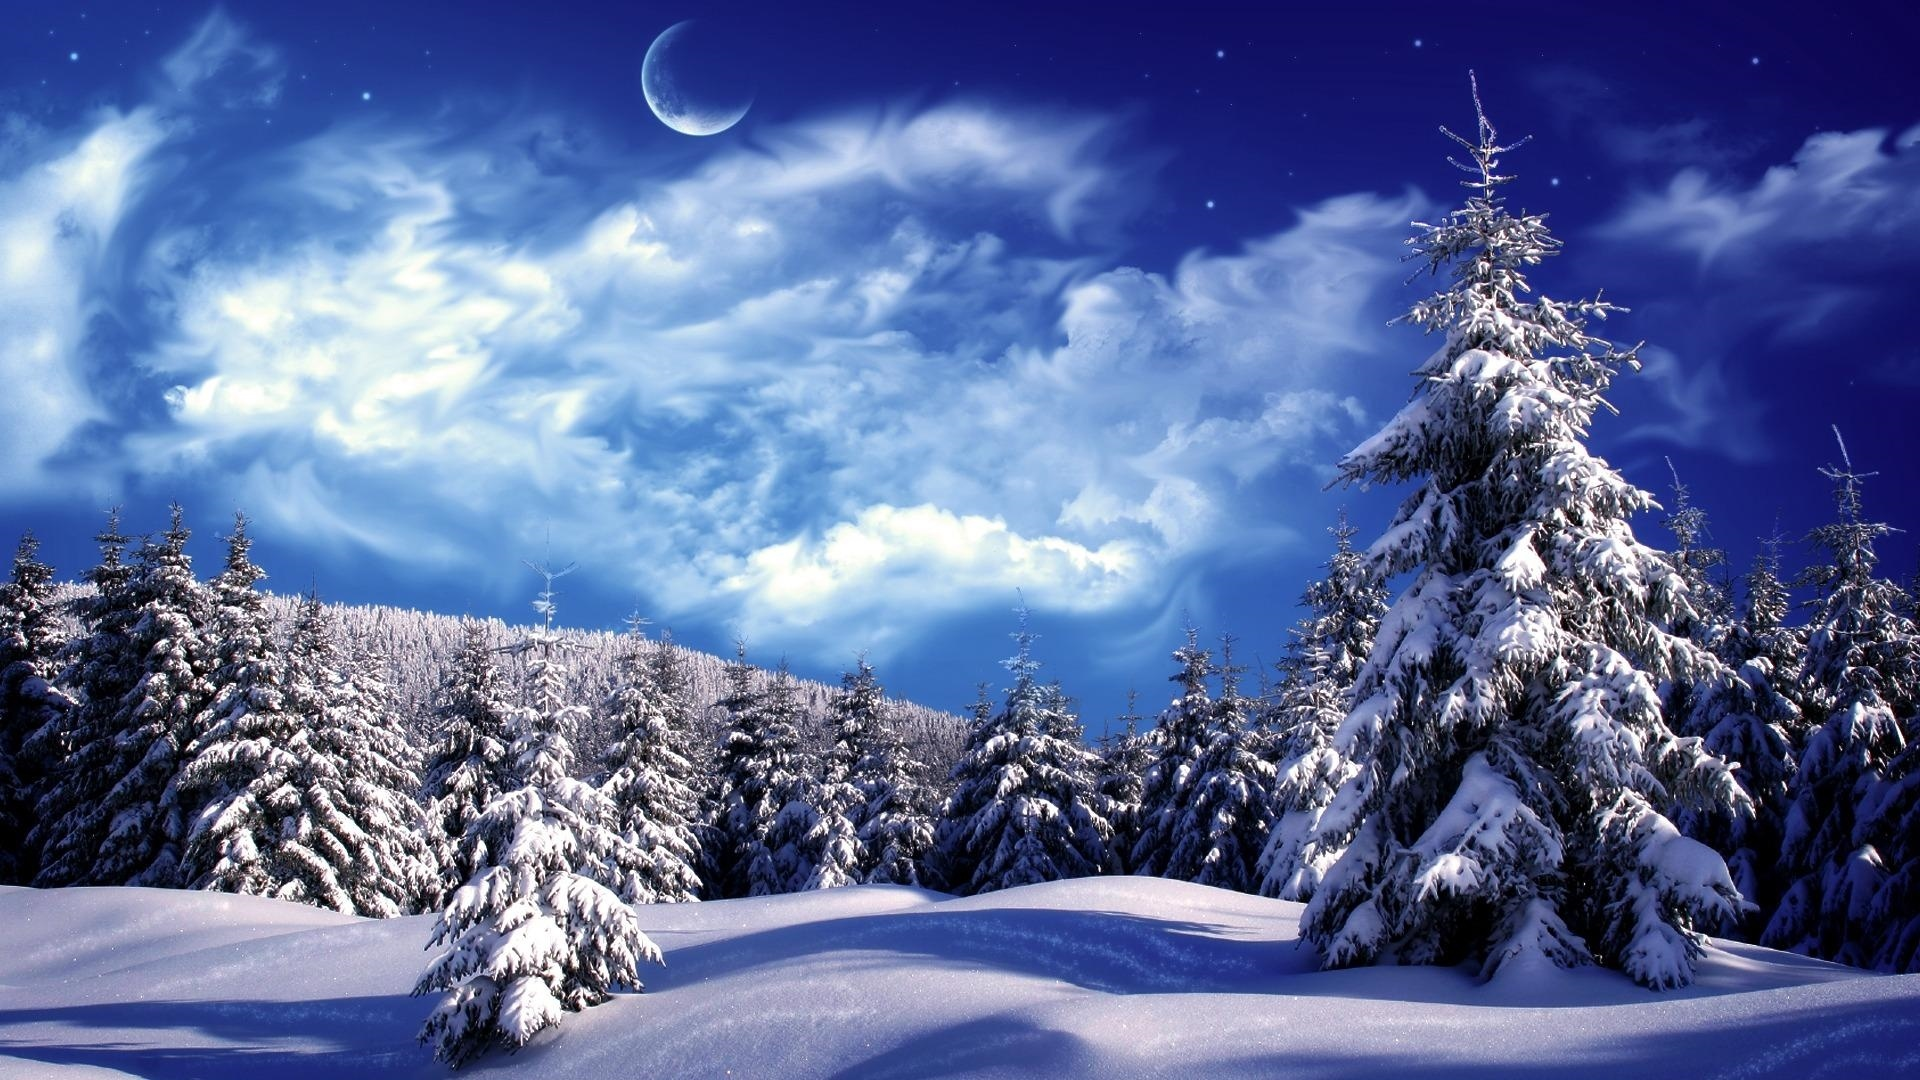 Winter New Year's Evening Background